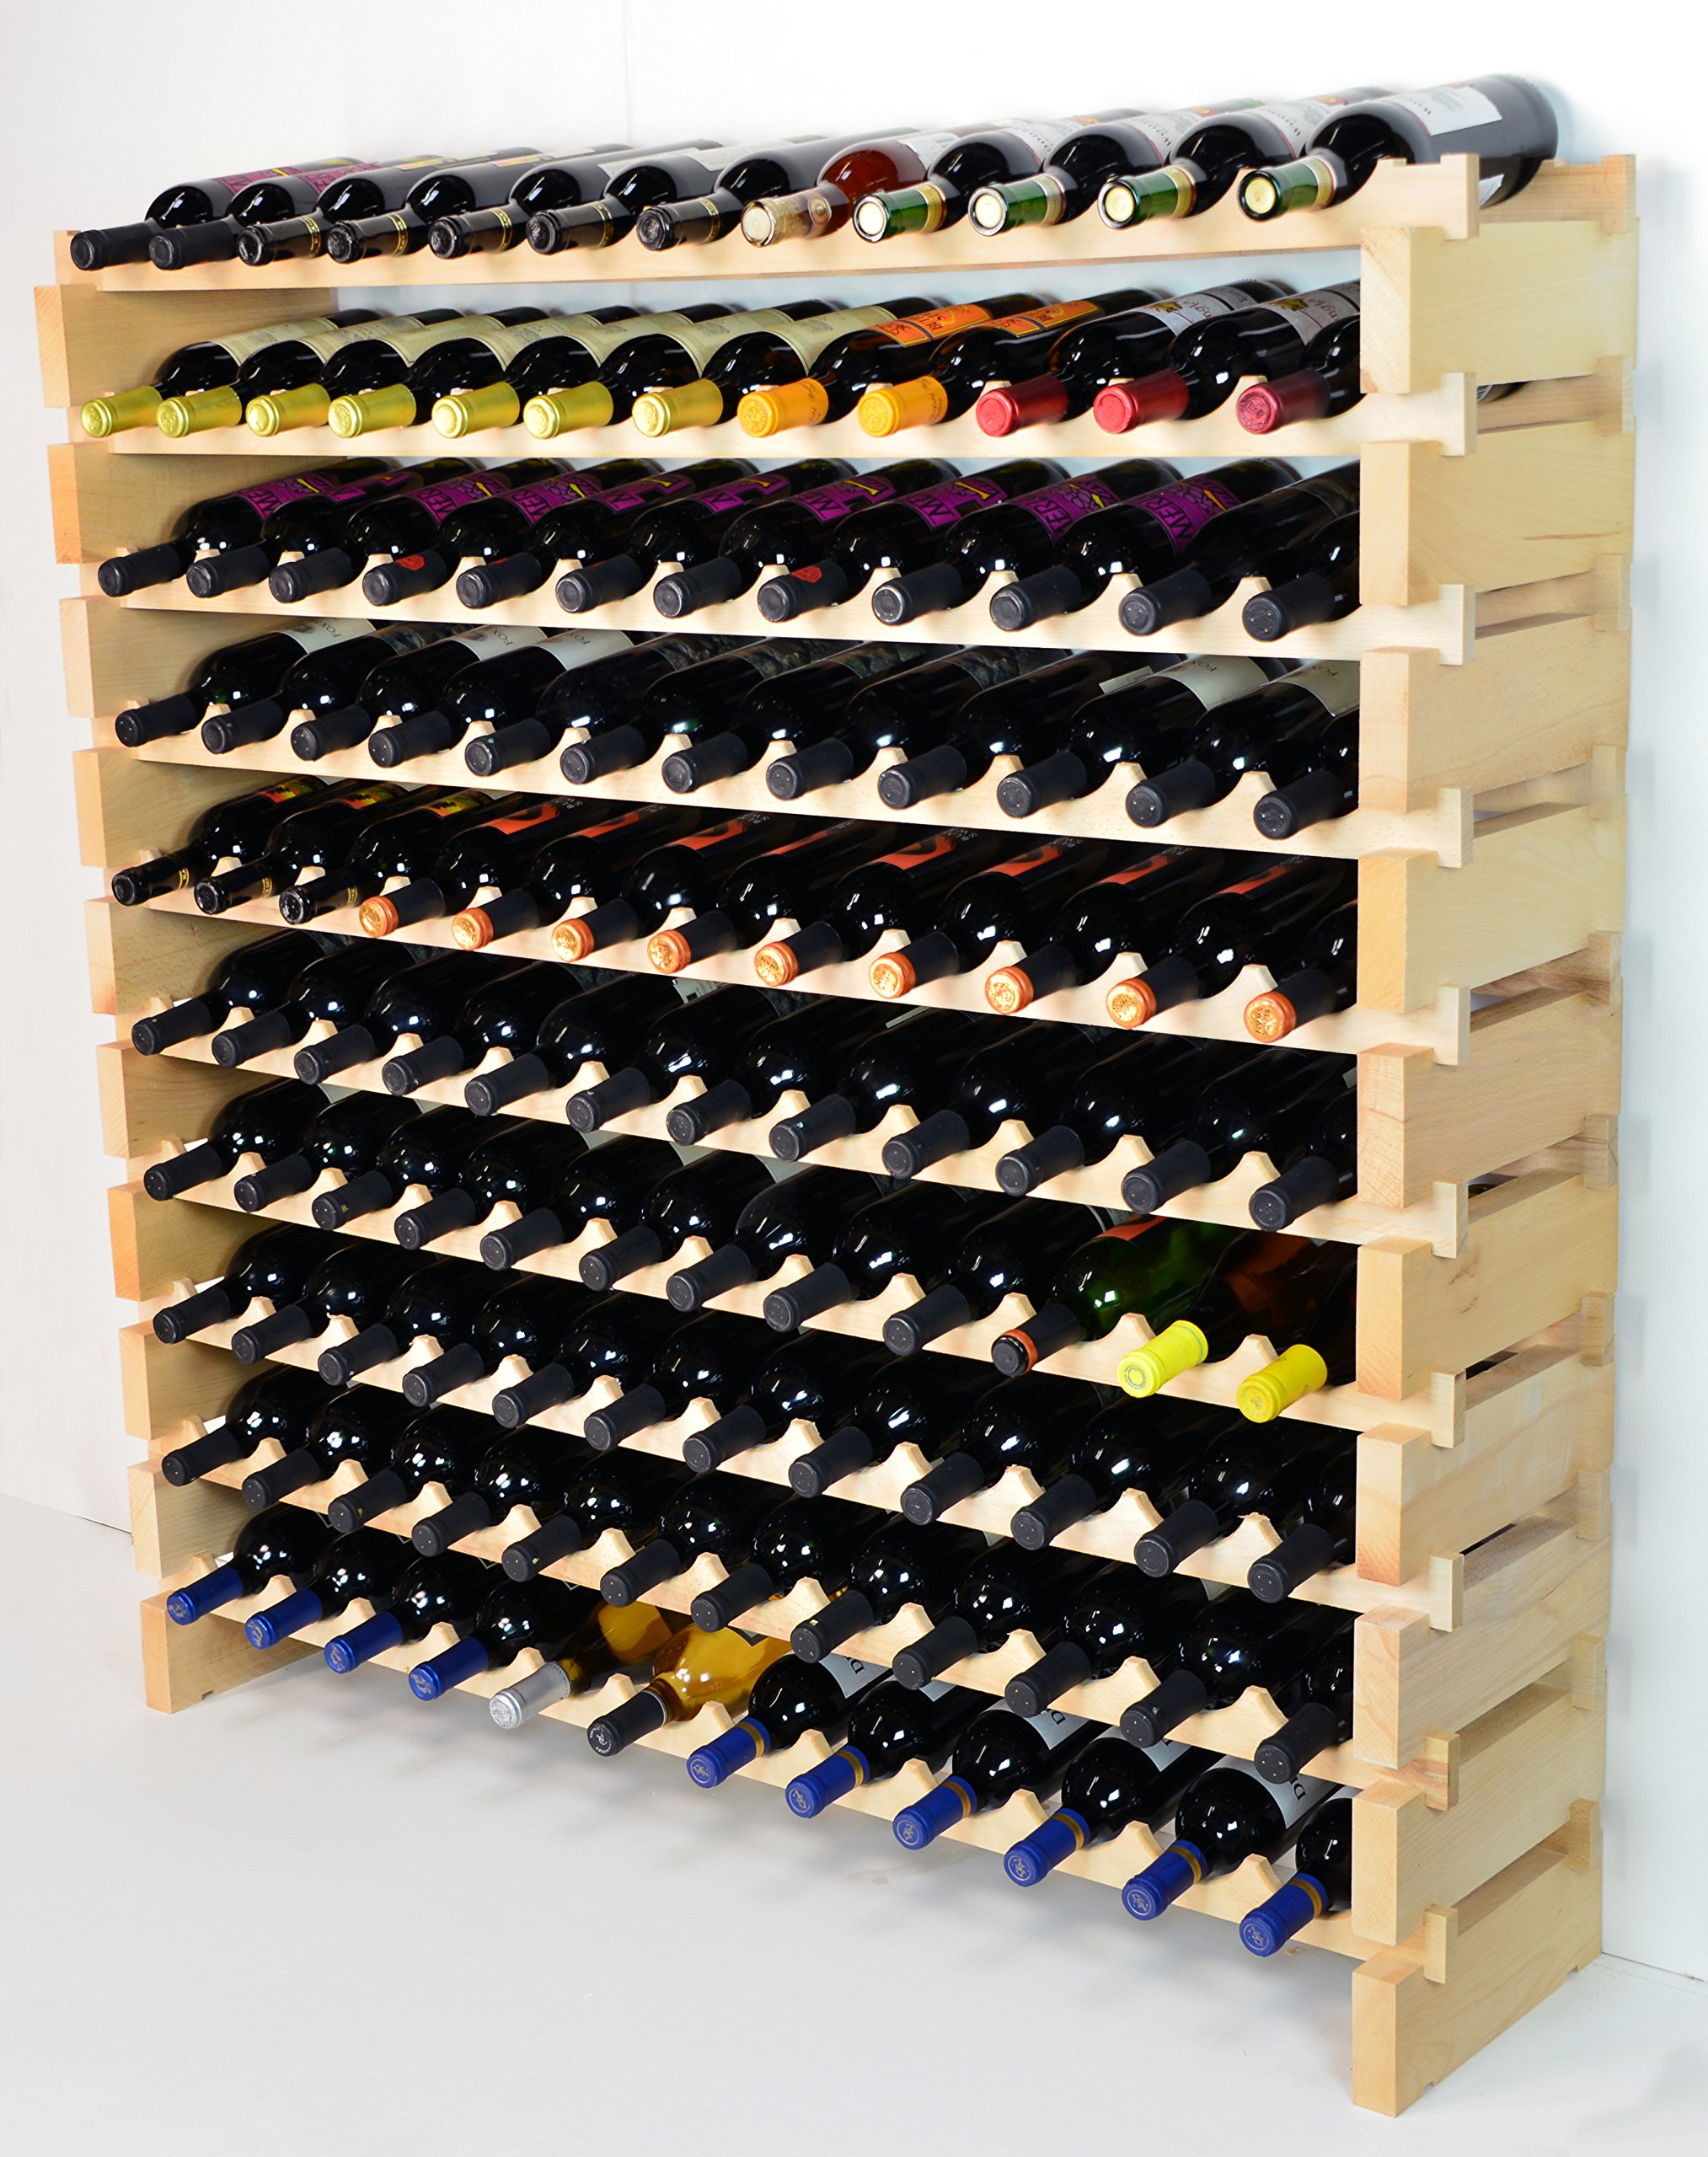 Modular Wine Rack Beechwood 48-144 Bottle Capacity 12 Bottles Across up to 12 Rows Newest Improved Model (120 Bottles - 10 Rows) by sfDisplay.com,LLC. (Image #2)